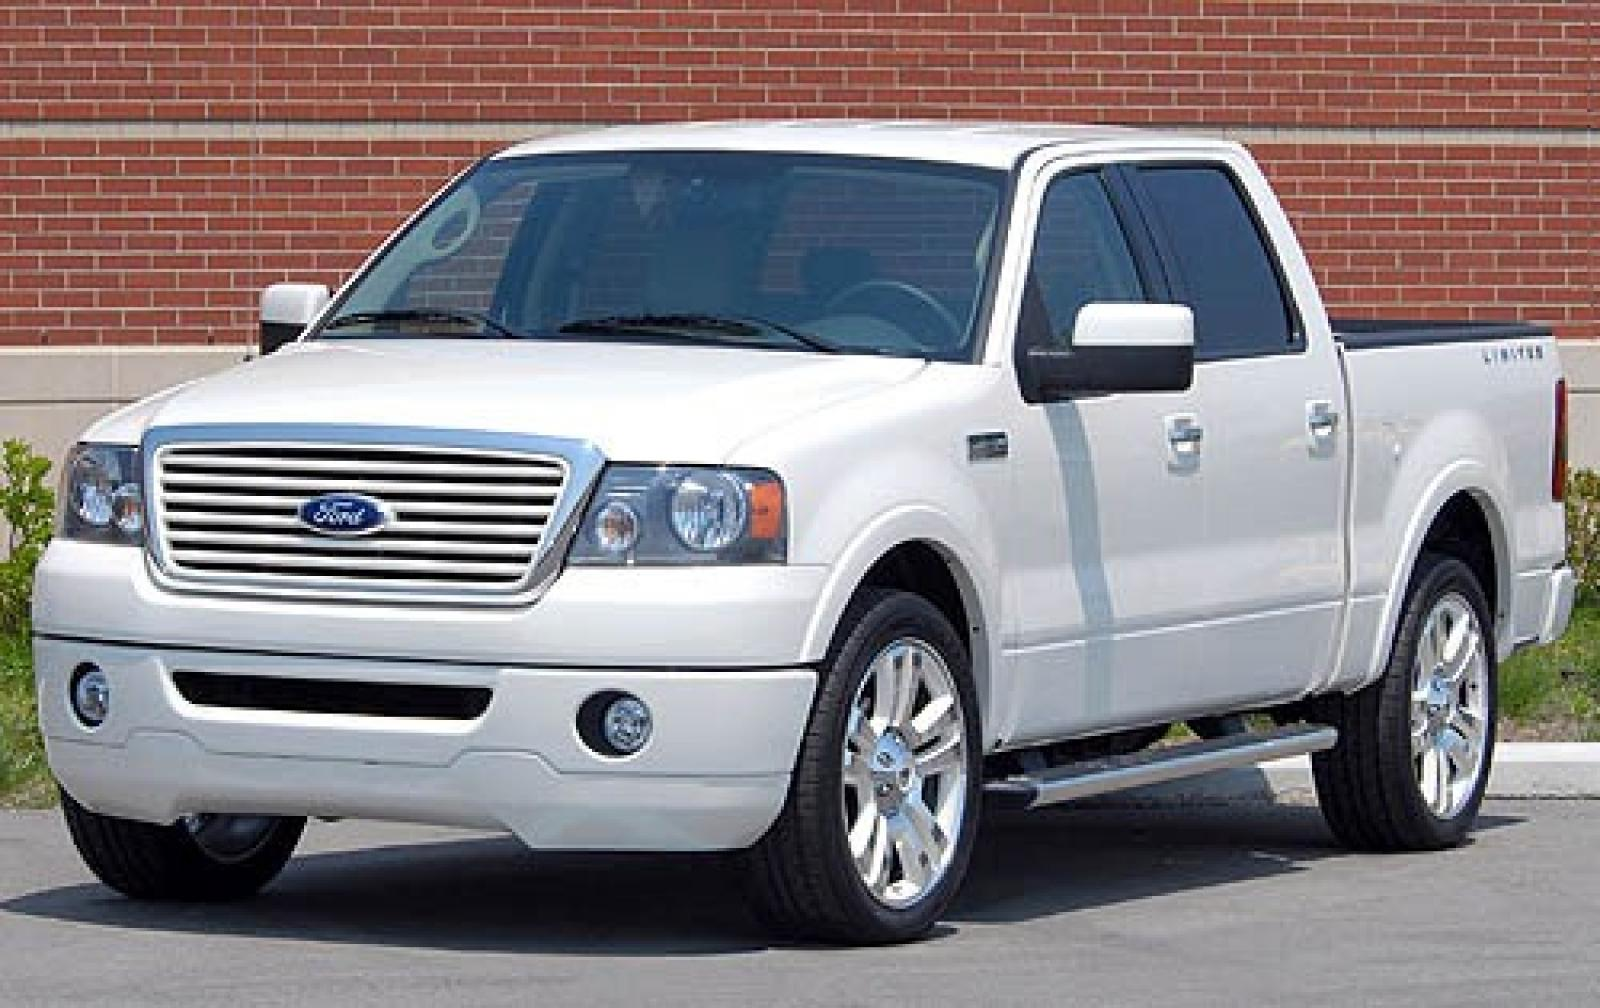 2008 ford f-150 lariat 4wd 5.4